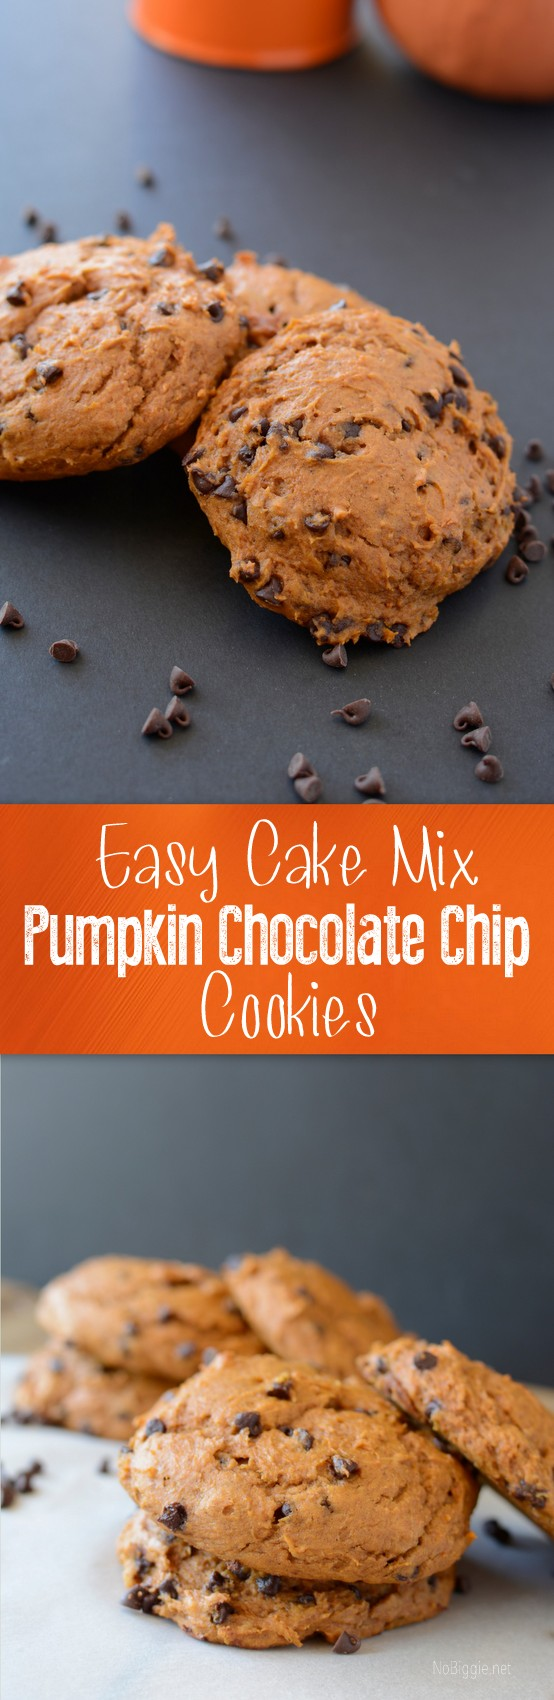 Chocolate Chip Pumpkin Cookies Spice Cake